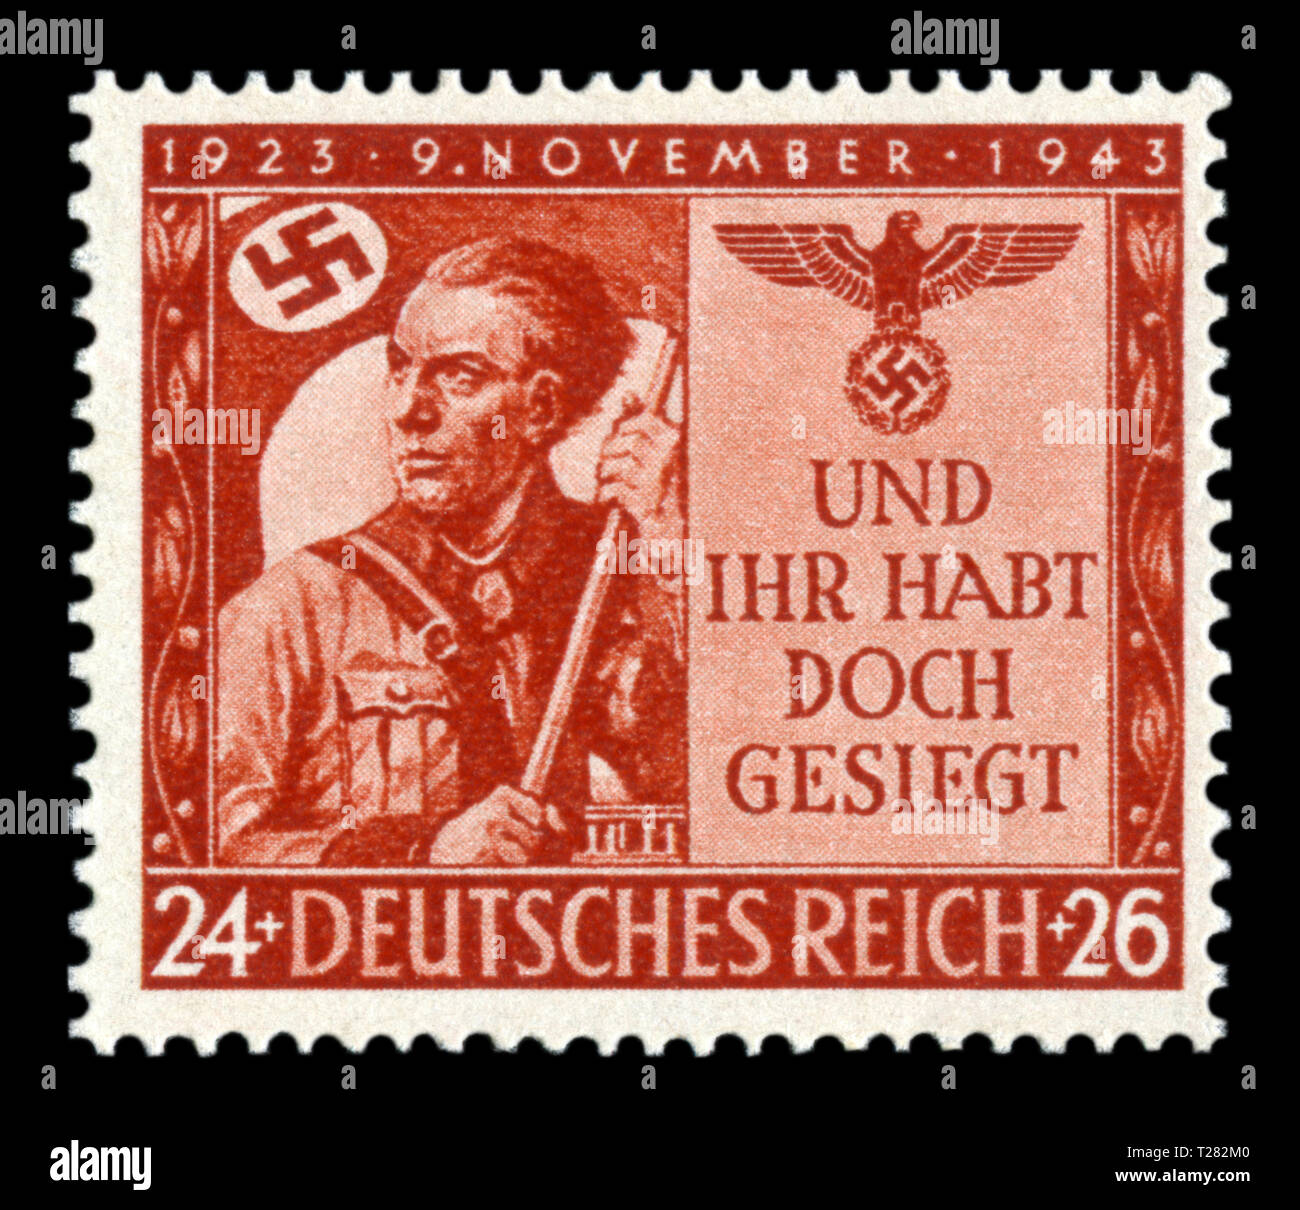 German historical stamp: The 20th anniversary of the 'Beer putsch', 'Against all odds, we won,' a young man from Hitler's youth with a flag, Germany - Stock Image